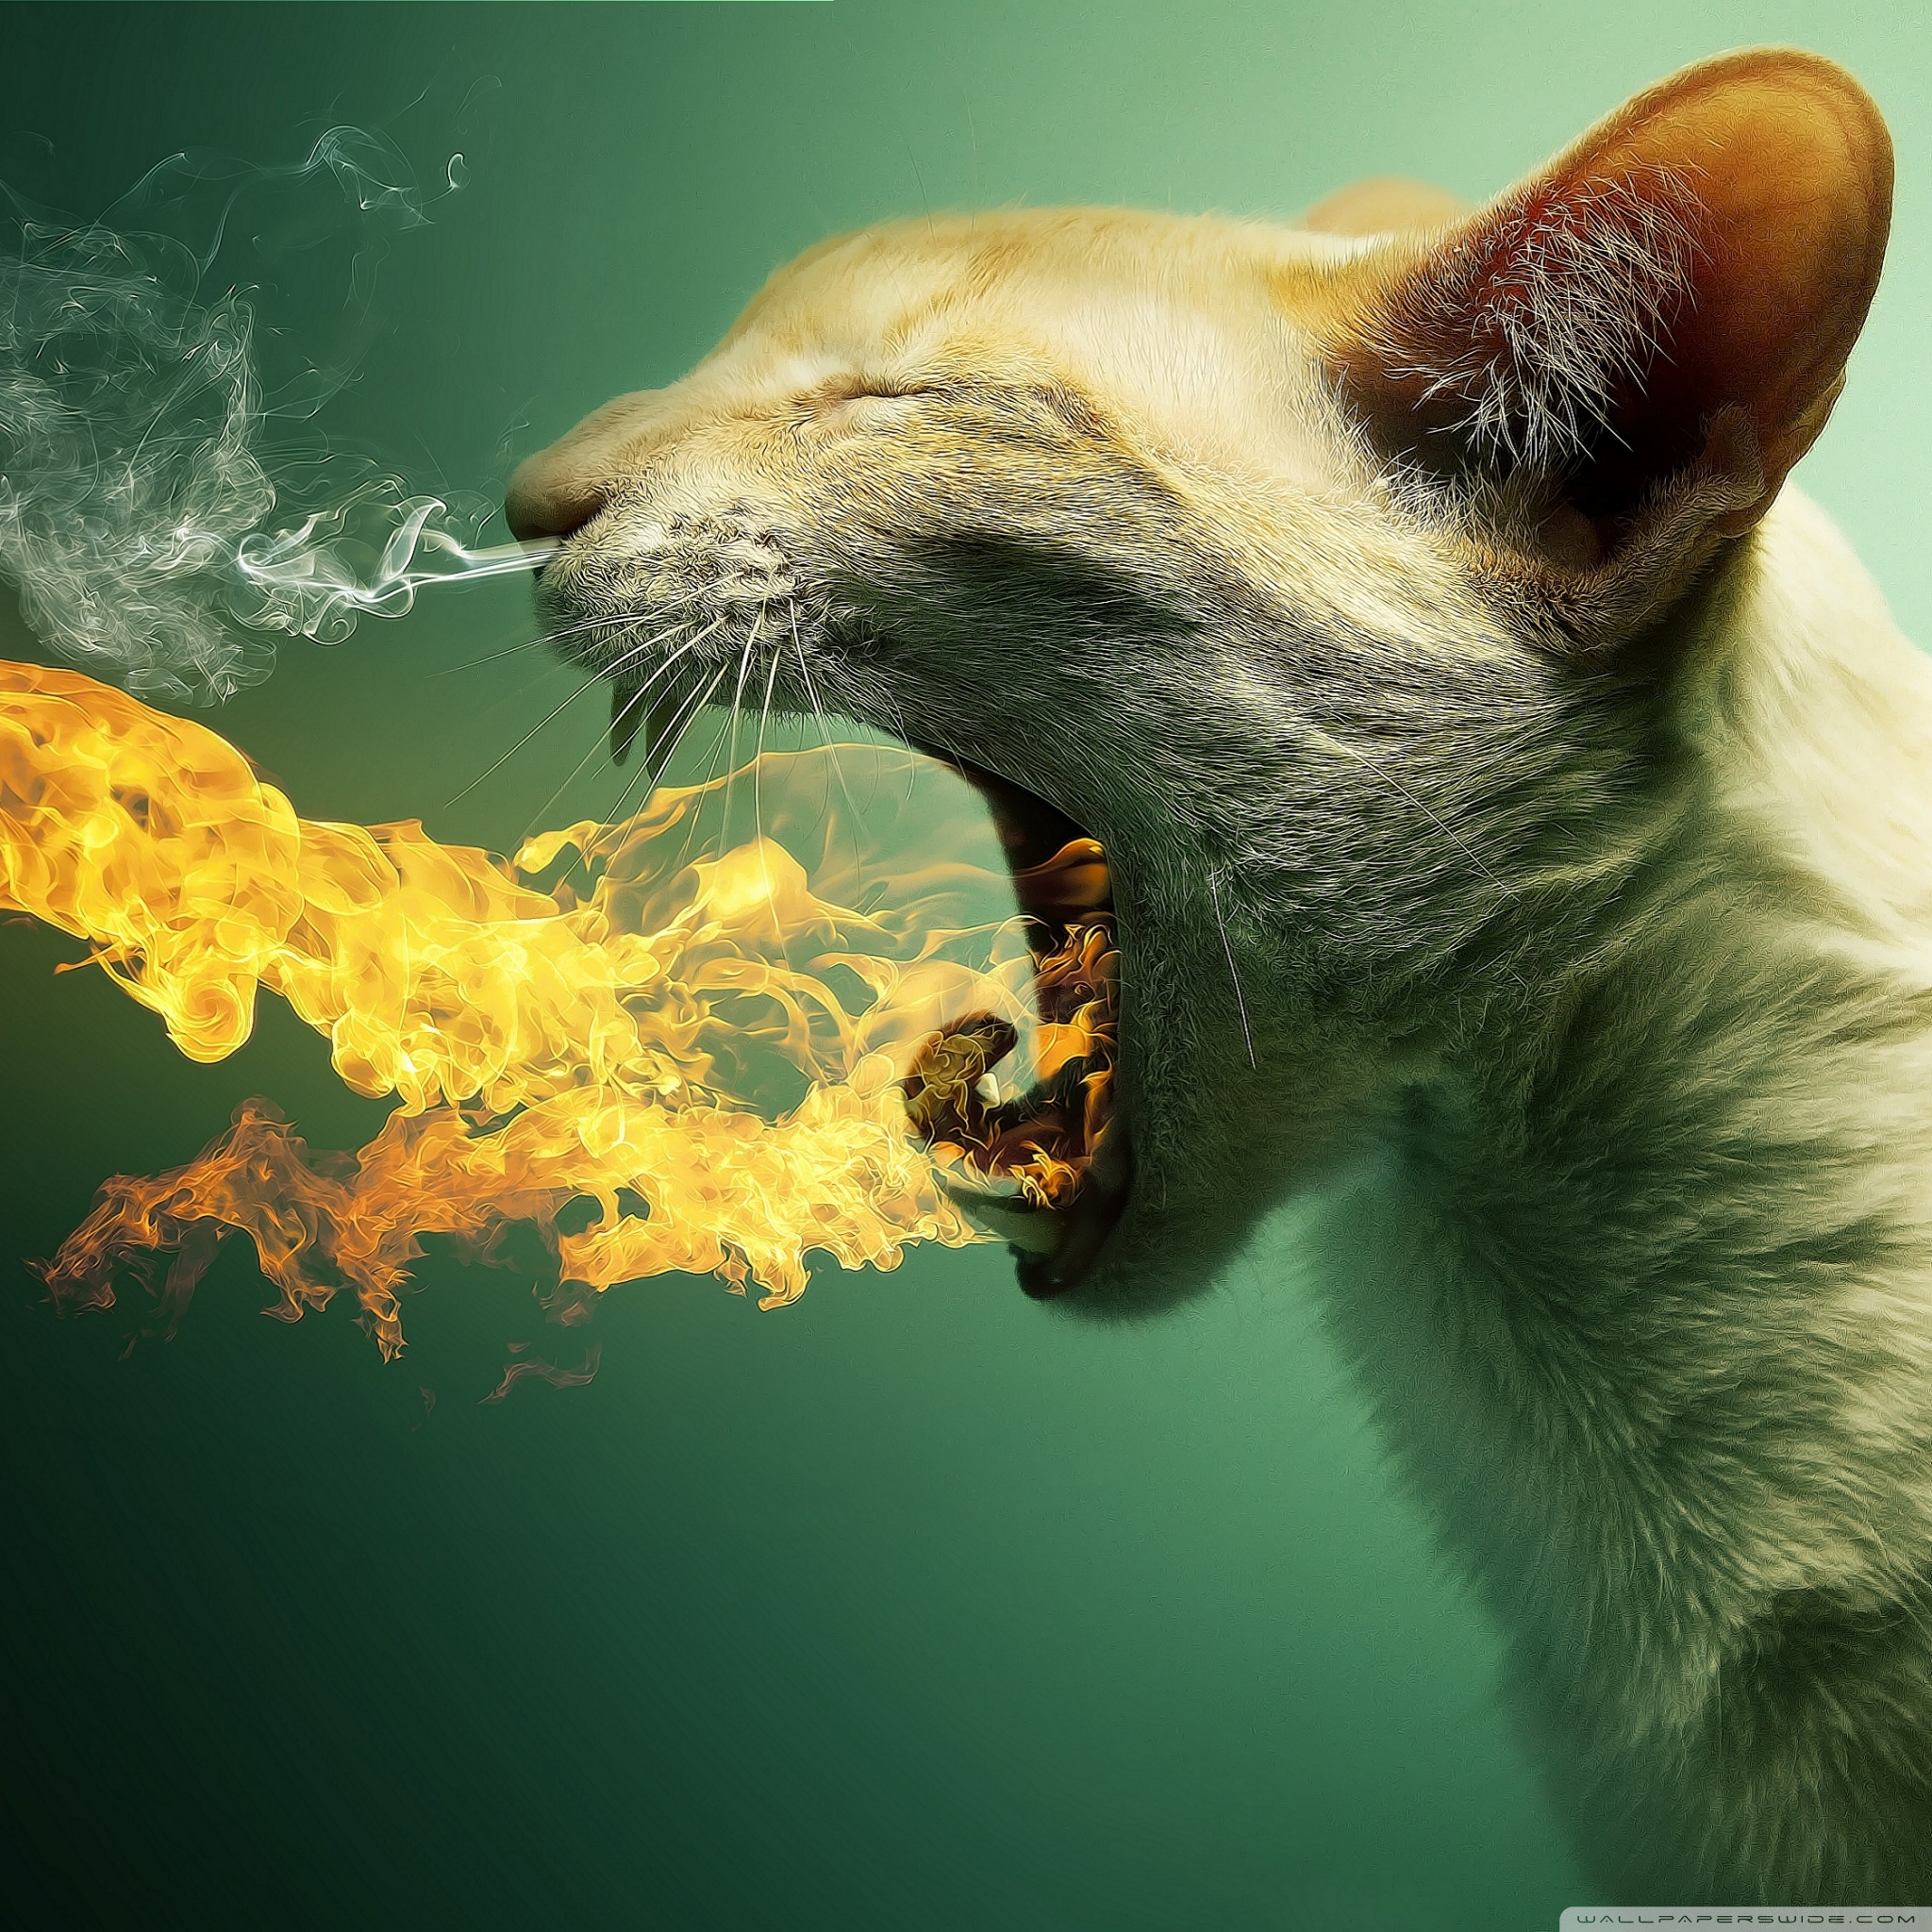 flaming cat wallpaper 2048x2048 40 Free HD Retina Display iPad 3 Wallpapers